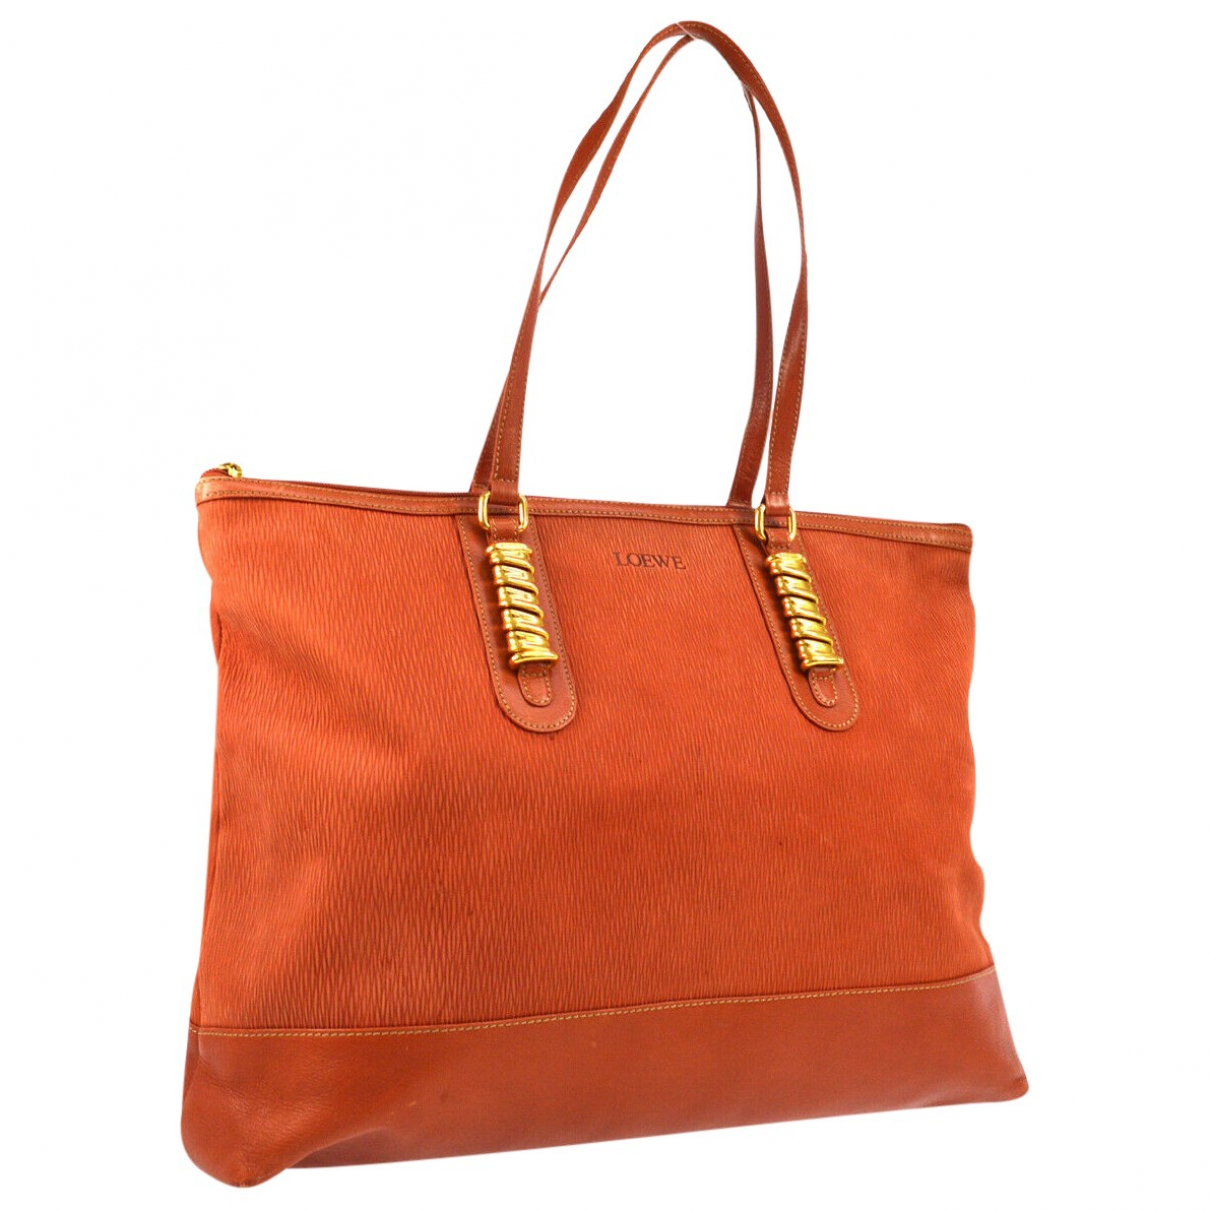 Loewe \N Orange Leather handbag for Women \N